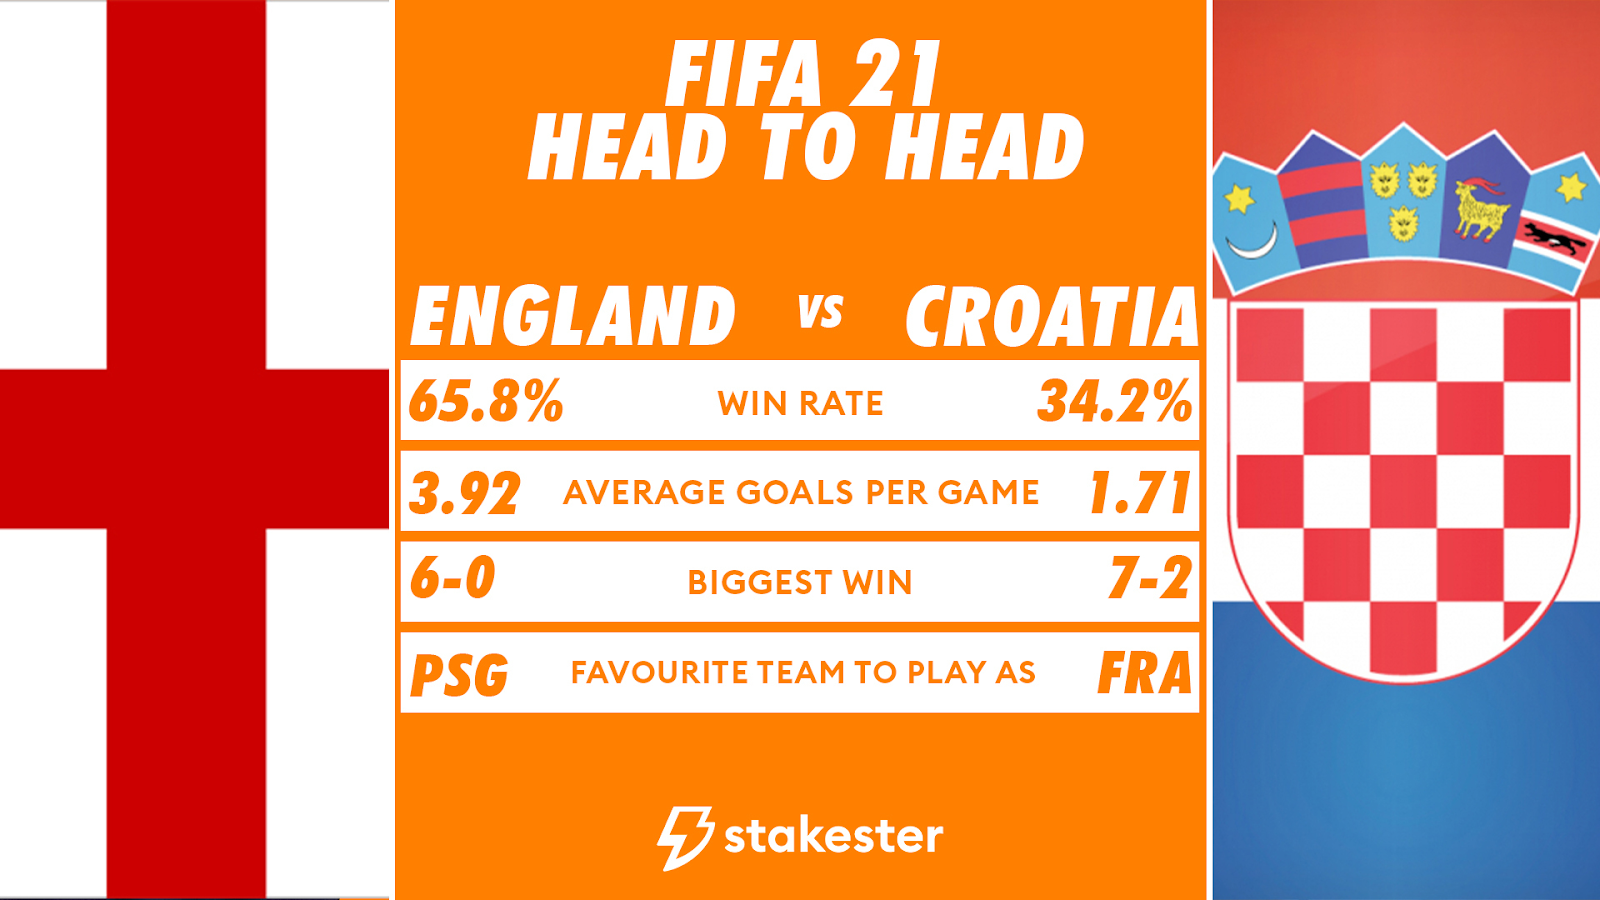 Stakester Data for England vs Croatia matches in which England won 65.8% of games.